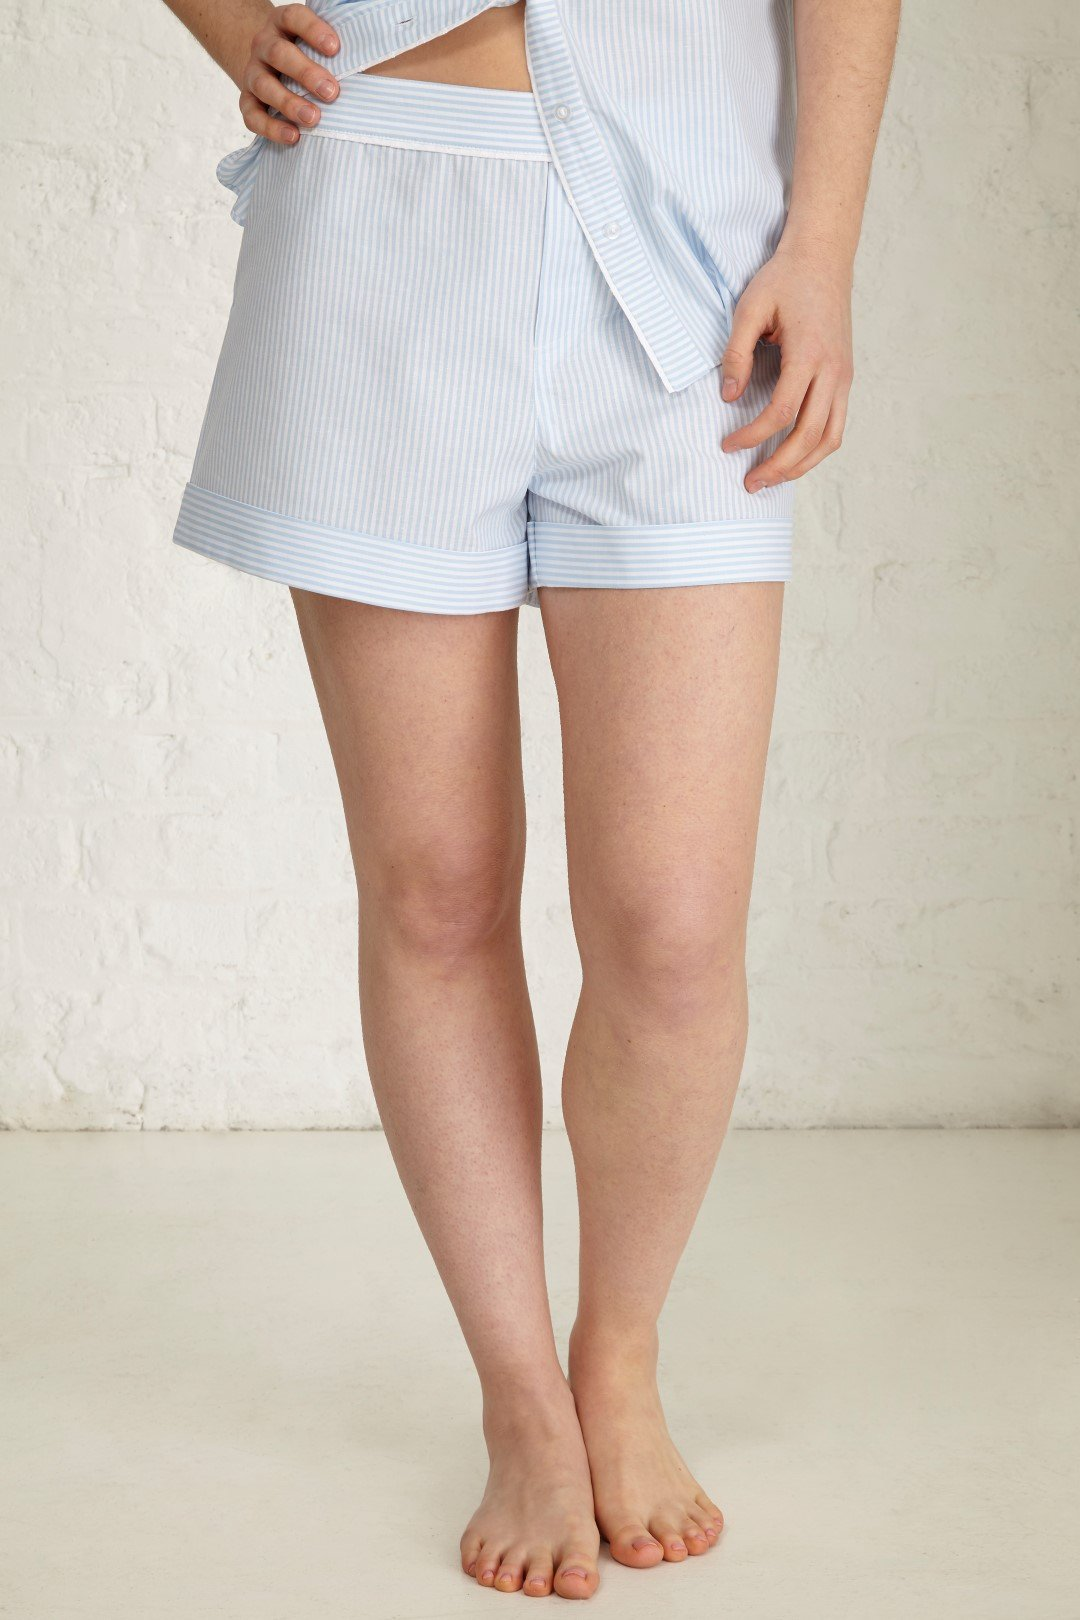 Find and save ideas about Striped shorts on Pinterest. | See more ideas about Stripe shorts, Black denim shorts and Black high waisted shorts.